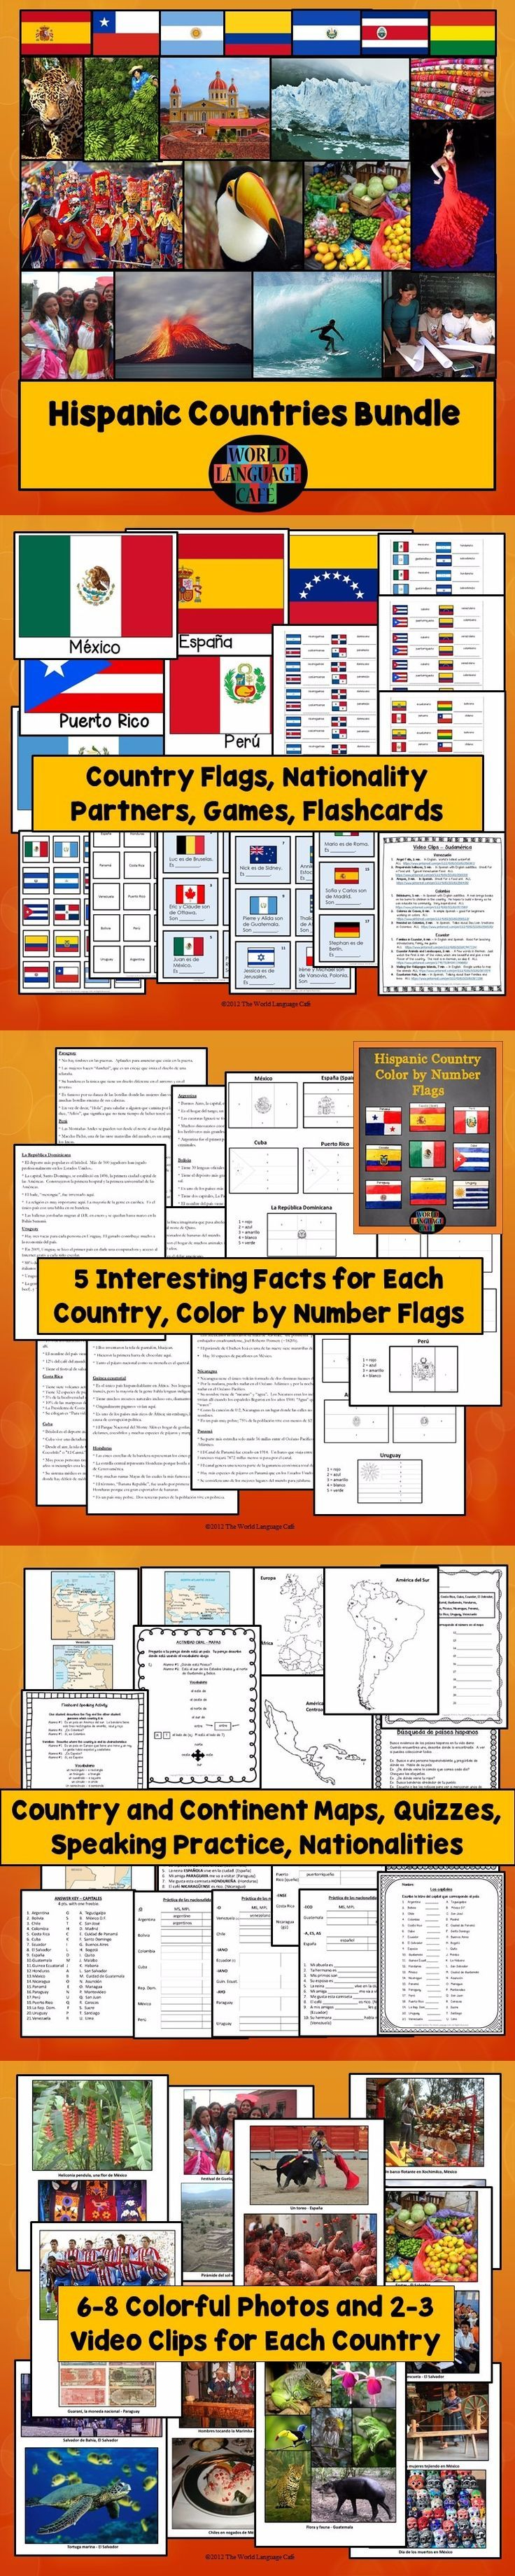 Do you struggle to make Spanish speaking countries culture come alive? Want to bring your students on virtual field trips to all 21 Hispanic countries without ever leaving claa? Want to convince even your most reluctant learners to speak Spanish so they can visit all these beautiful Hispanic countries? A whole year of Hispanic culture: video links, colorful photos, interesting facts, nationality practice, flags, map quizzes, and more.